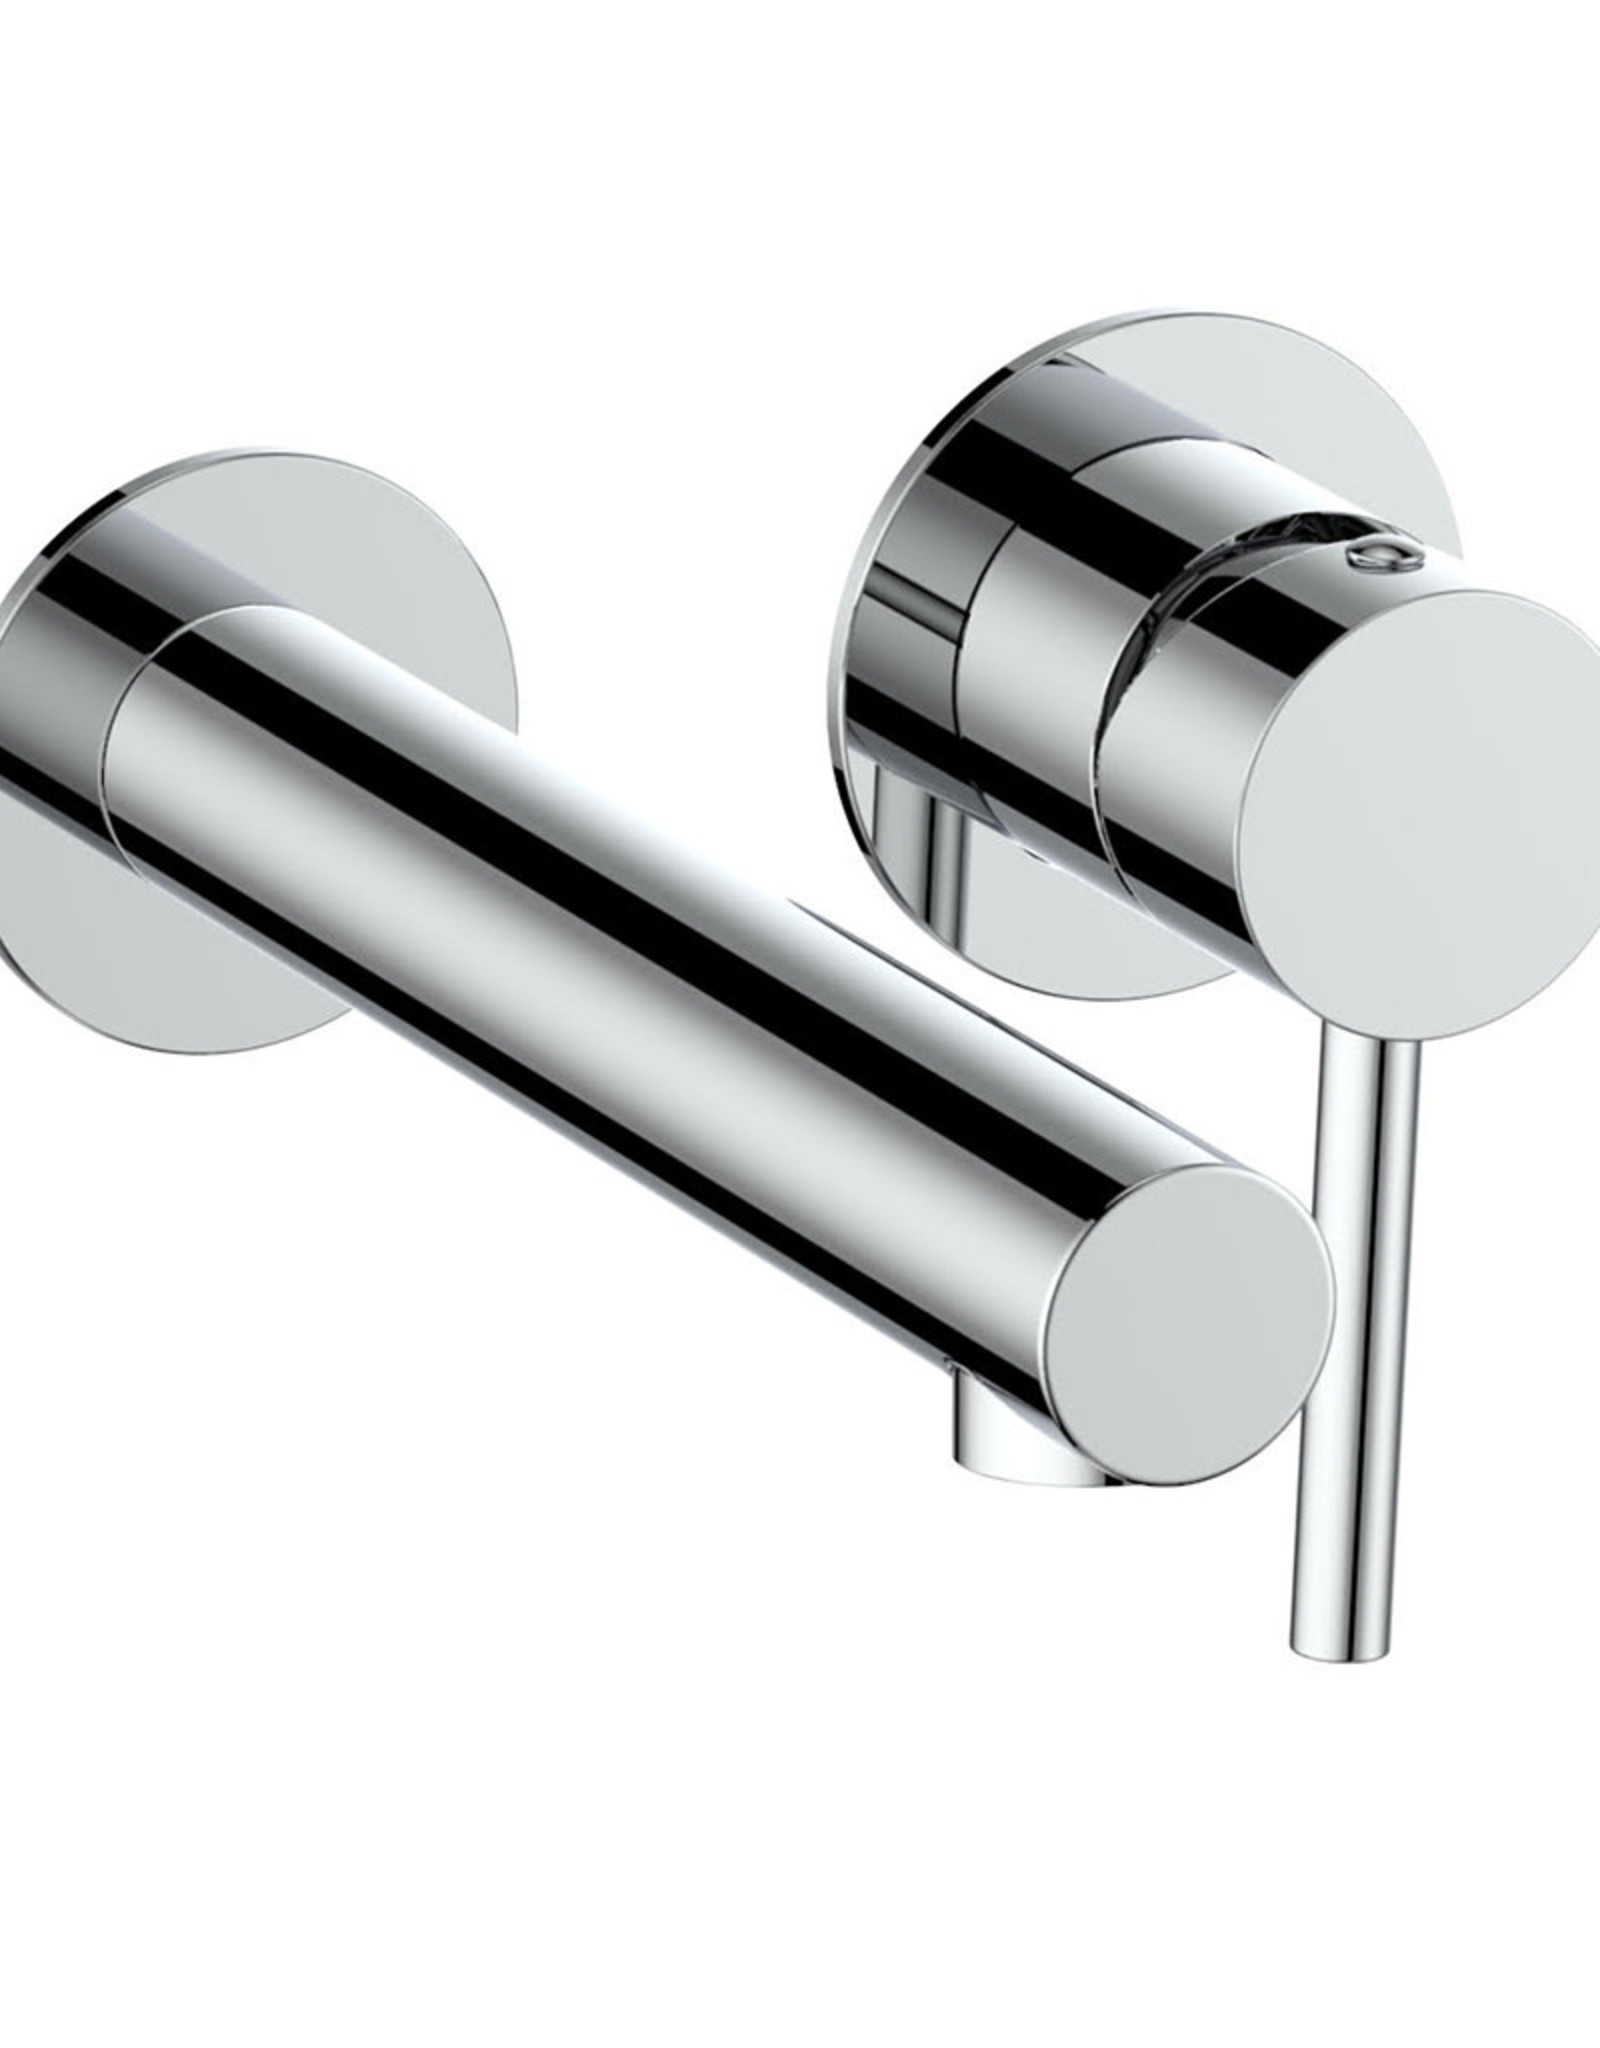 Vogt Worgl Chrome Wall- Mounted Lav Faucet